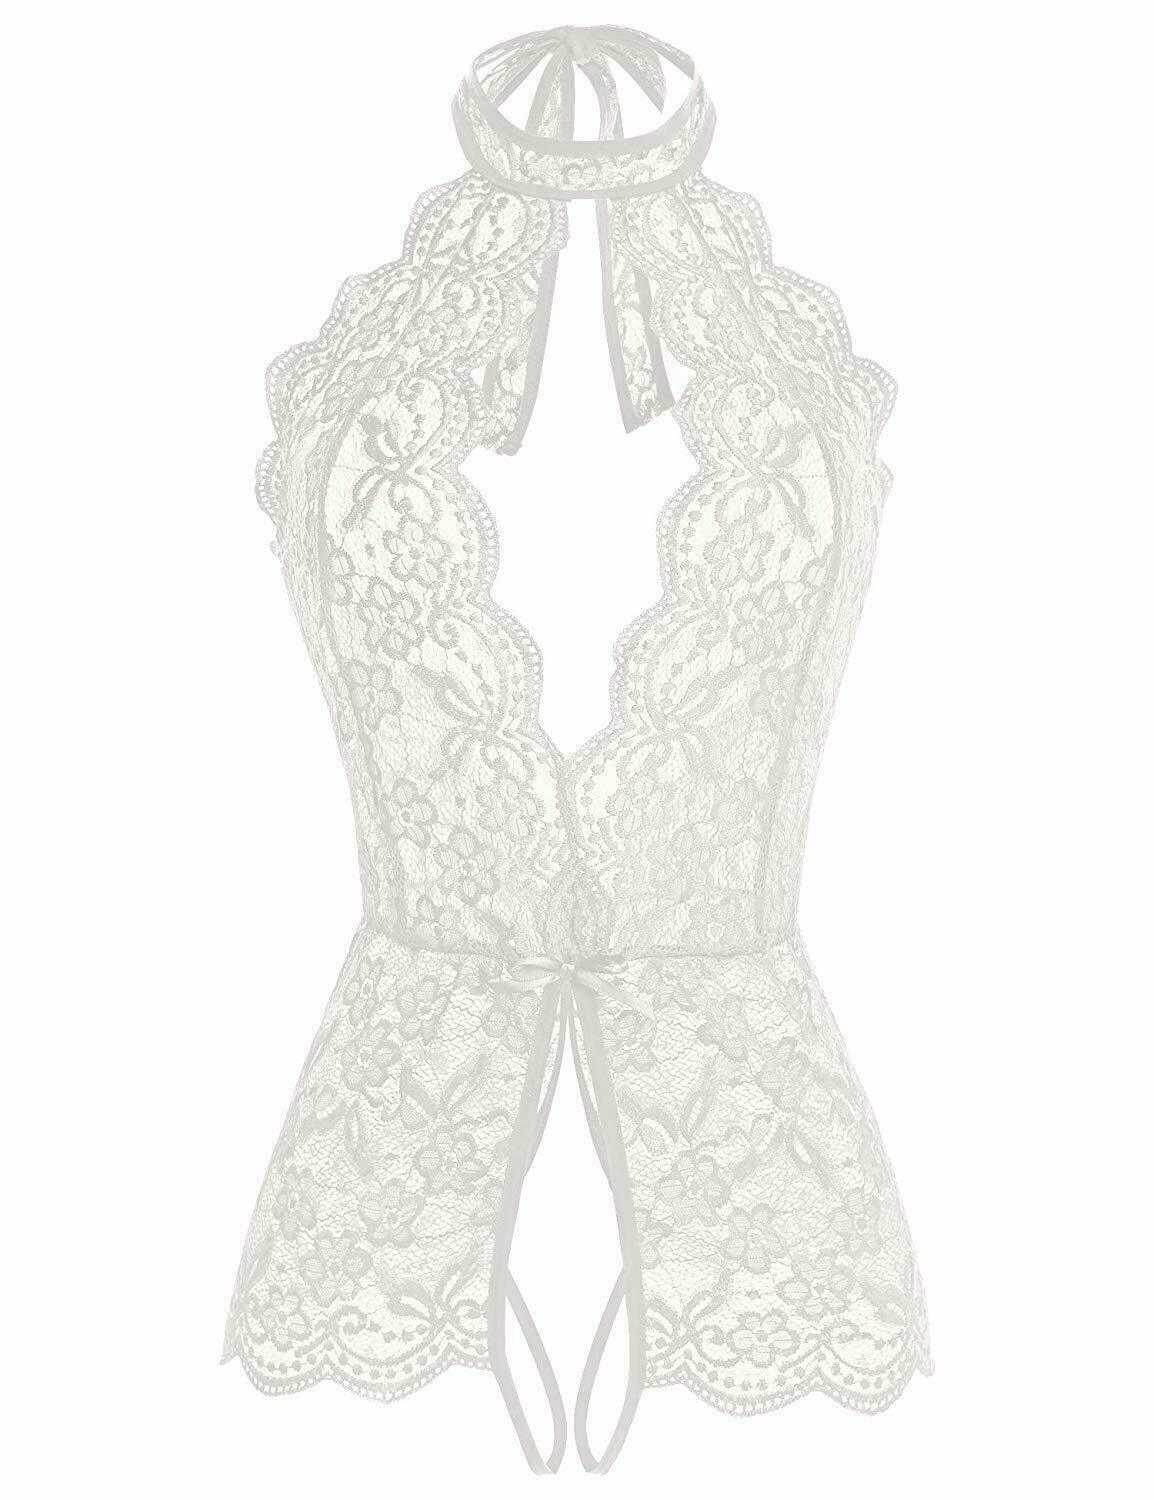 Plus Size Sexy Lingerie Lace One-Piece Womens Teddy Crothless Bodysuit US FAST Clothing, Shoes & Accessories